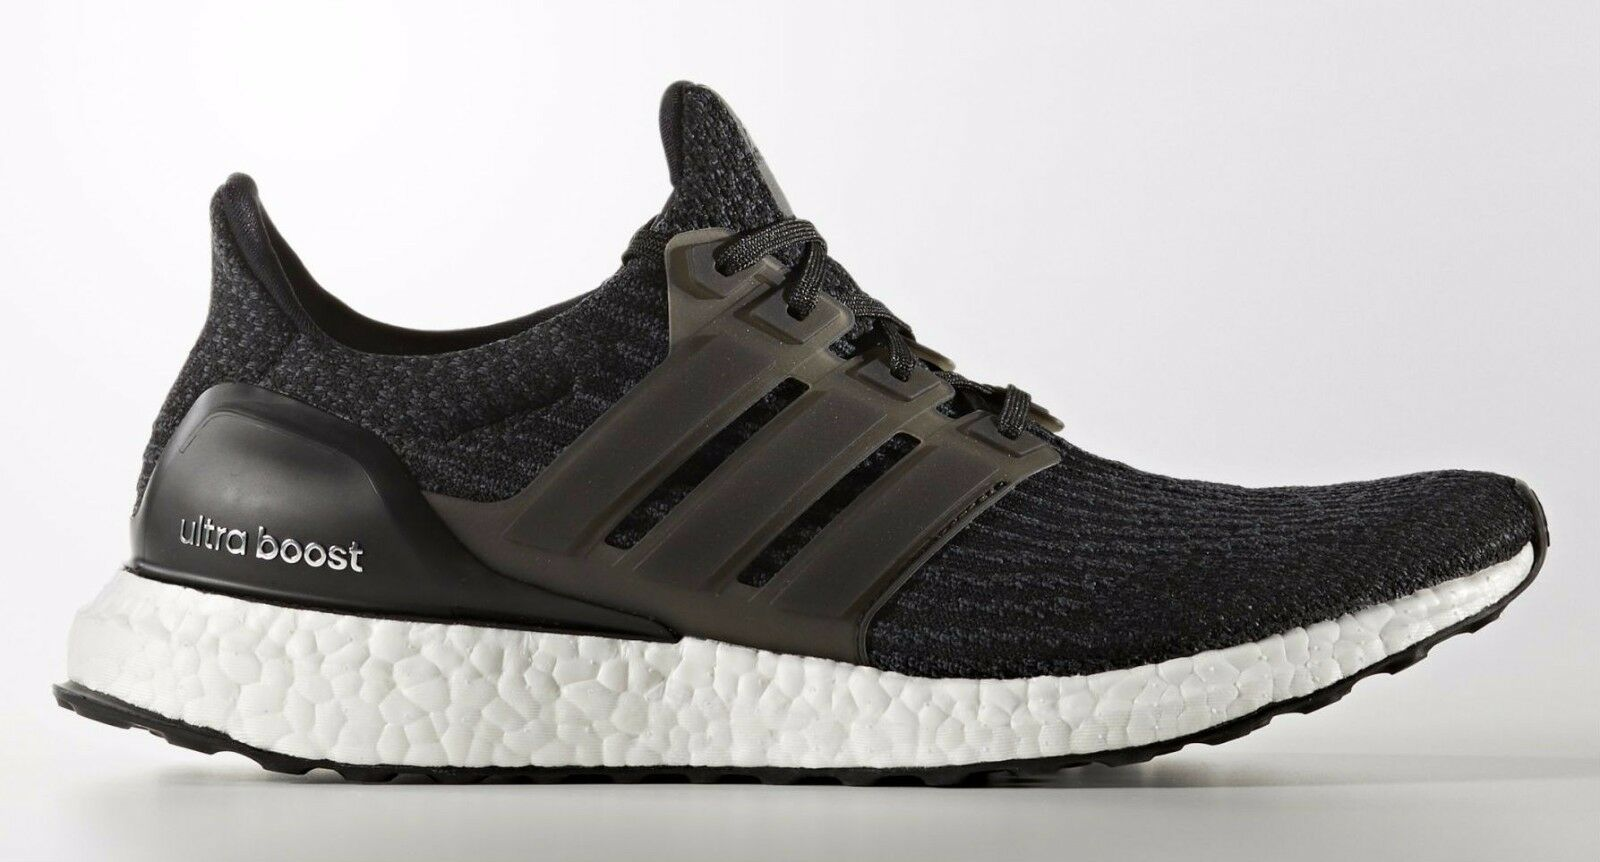 NEW Adidas Ultra Boost 3.0 Reflective Black BA8842 LIMITED all sizes